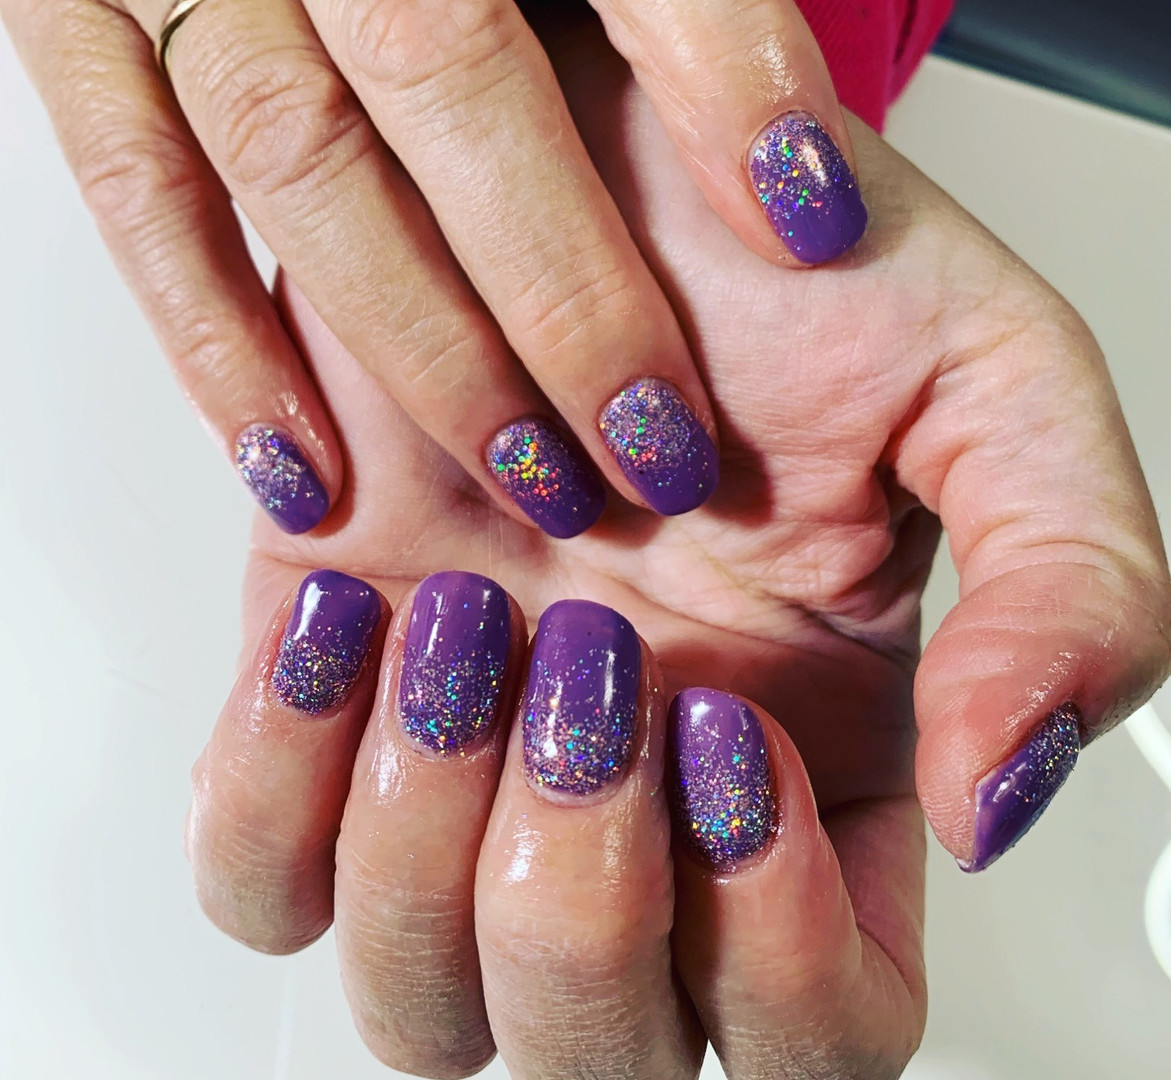 Magpie Gel & Glitter On Natural Nails